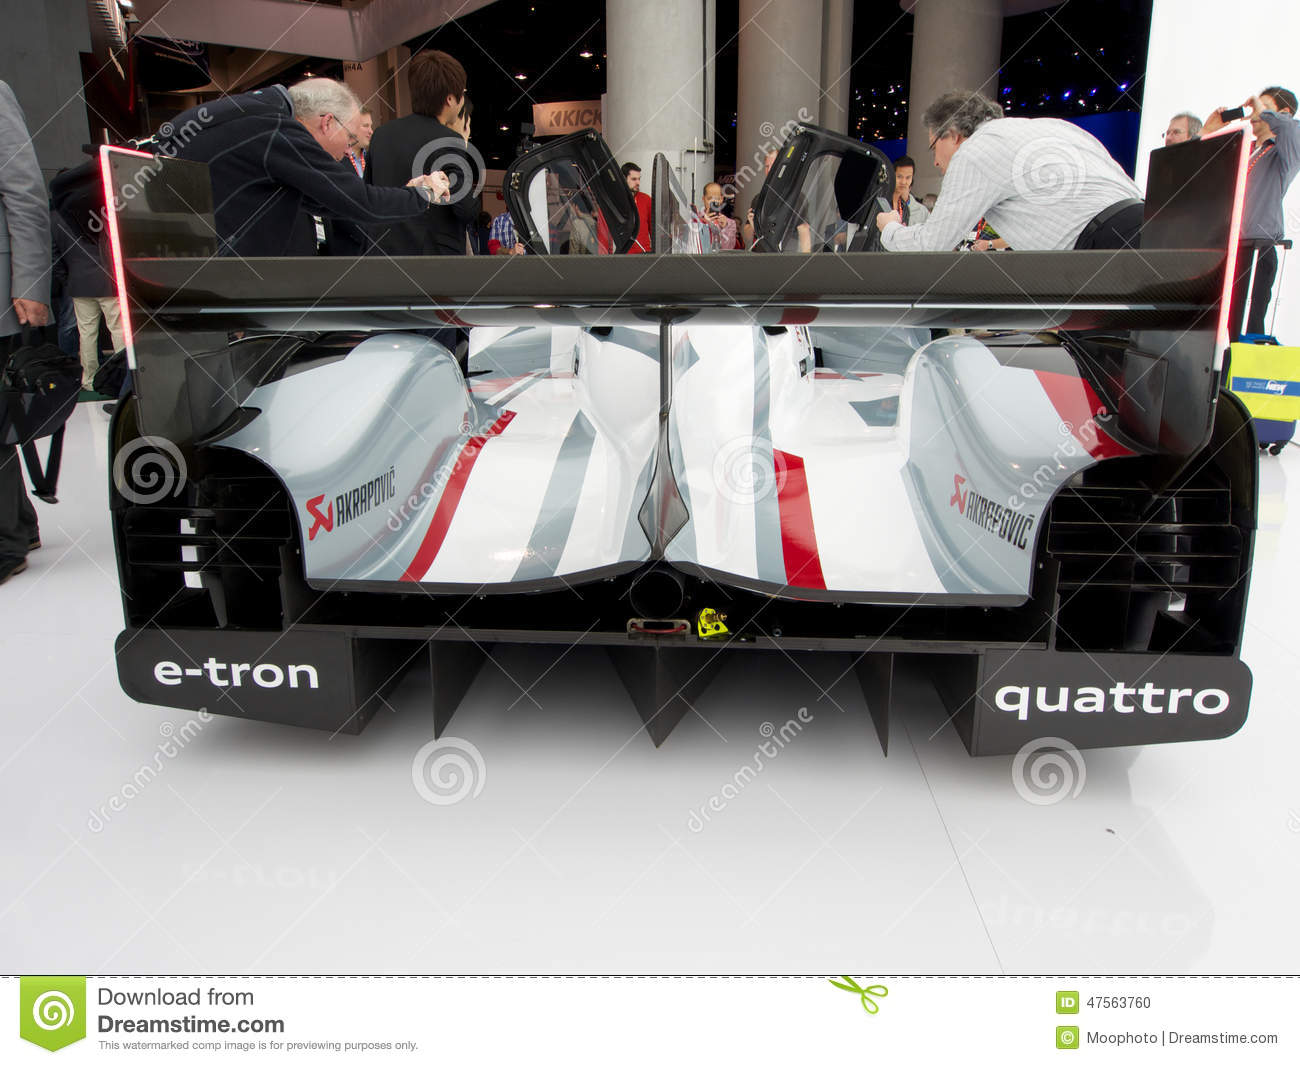 Audi to test 5G use cases in car production